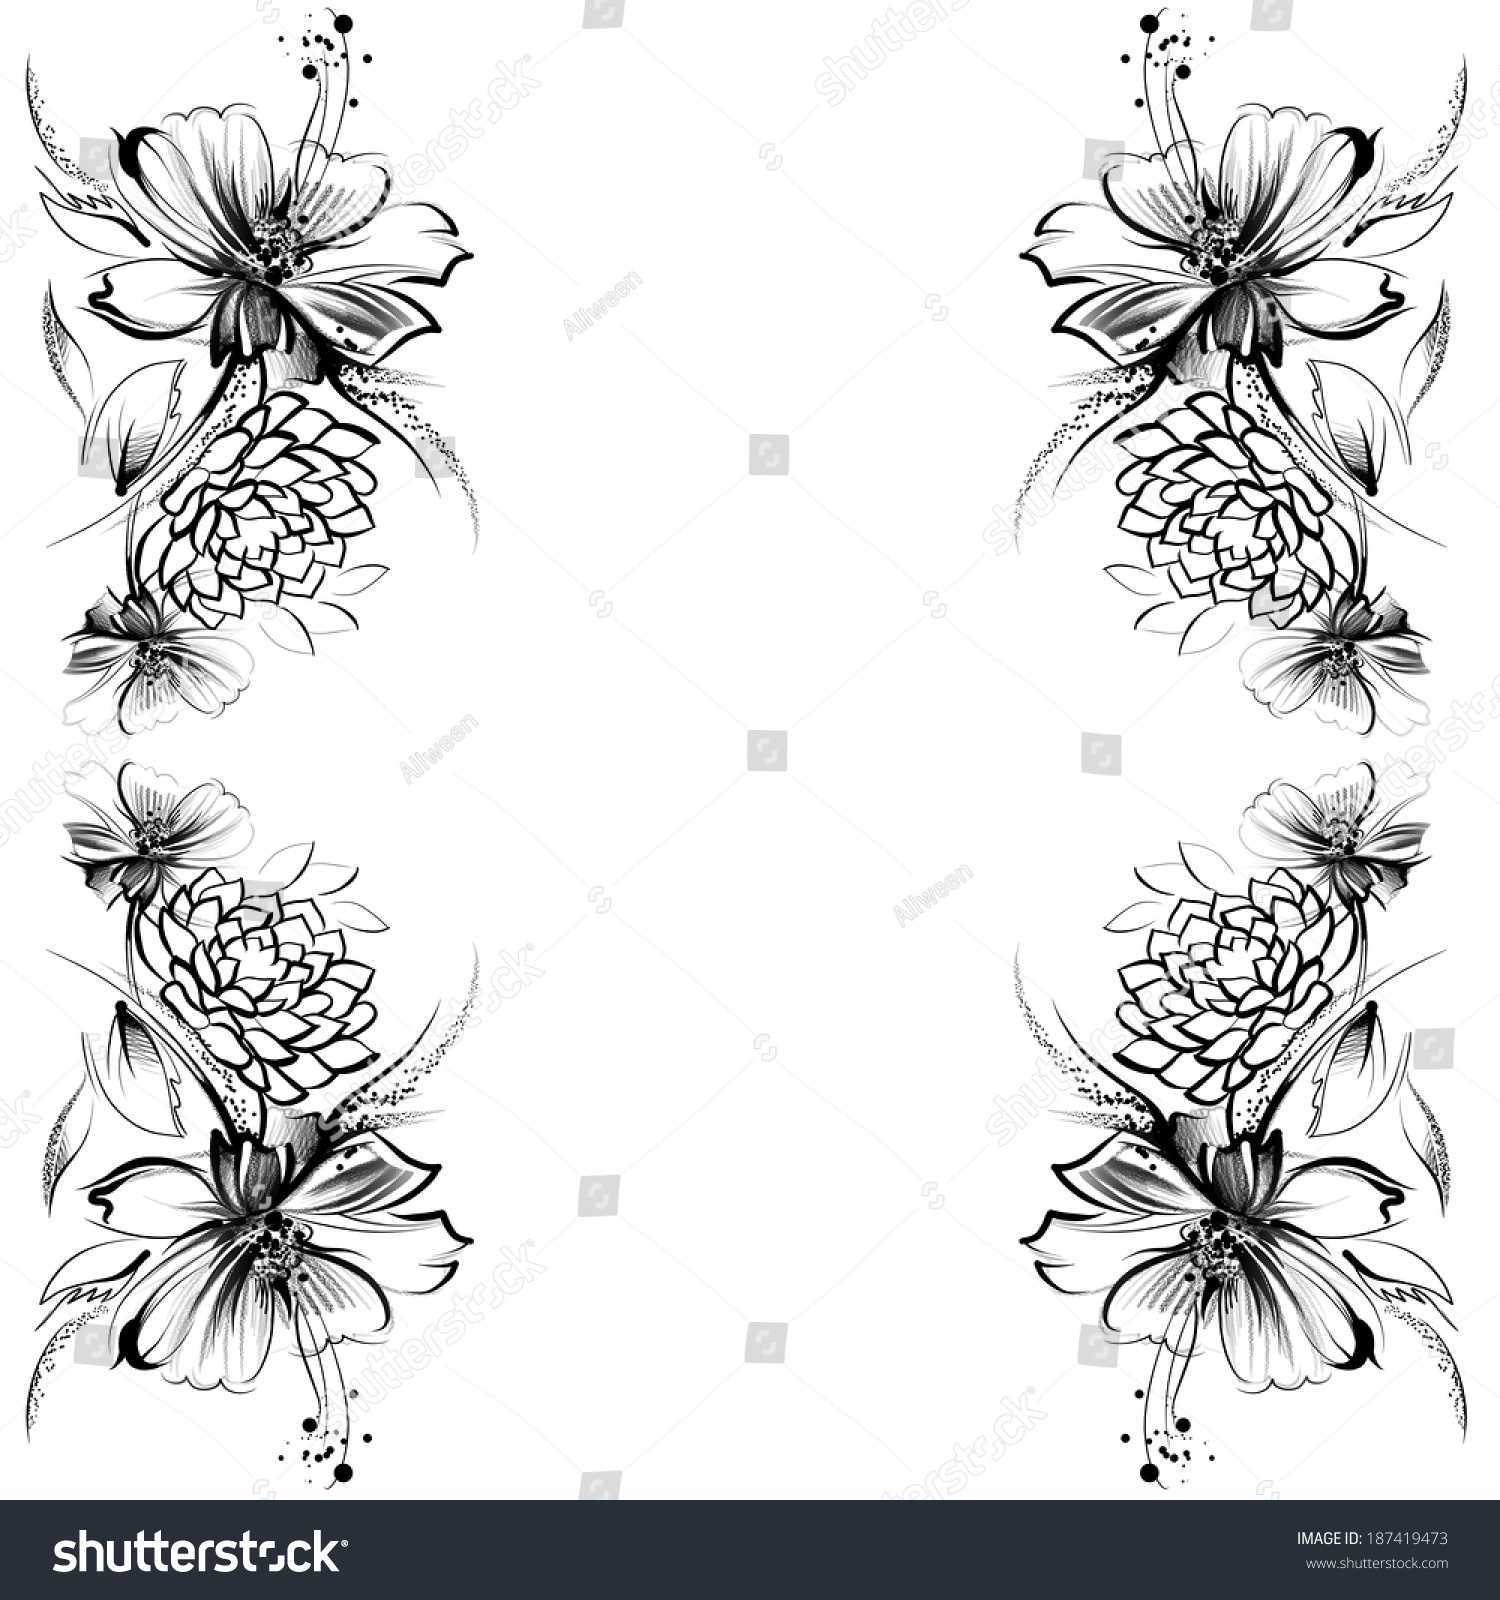 Flowers drawing simple pencil coal on stock illustration for Simple flower designs for pencil drawing